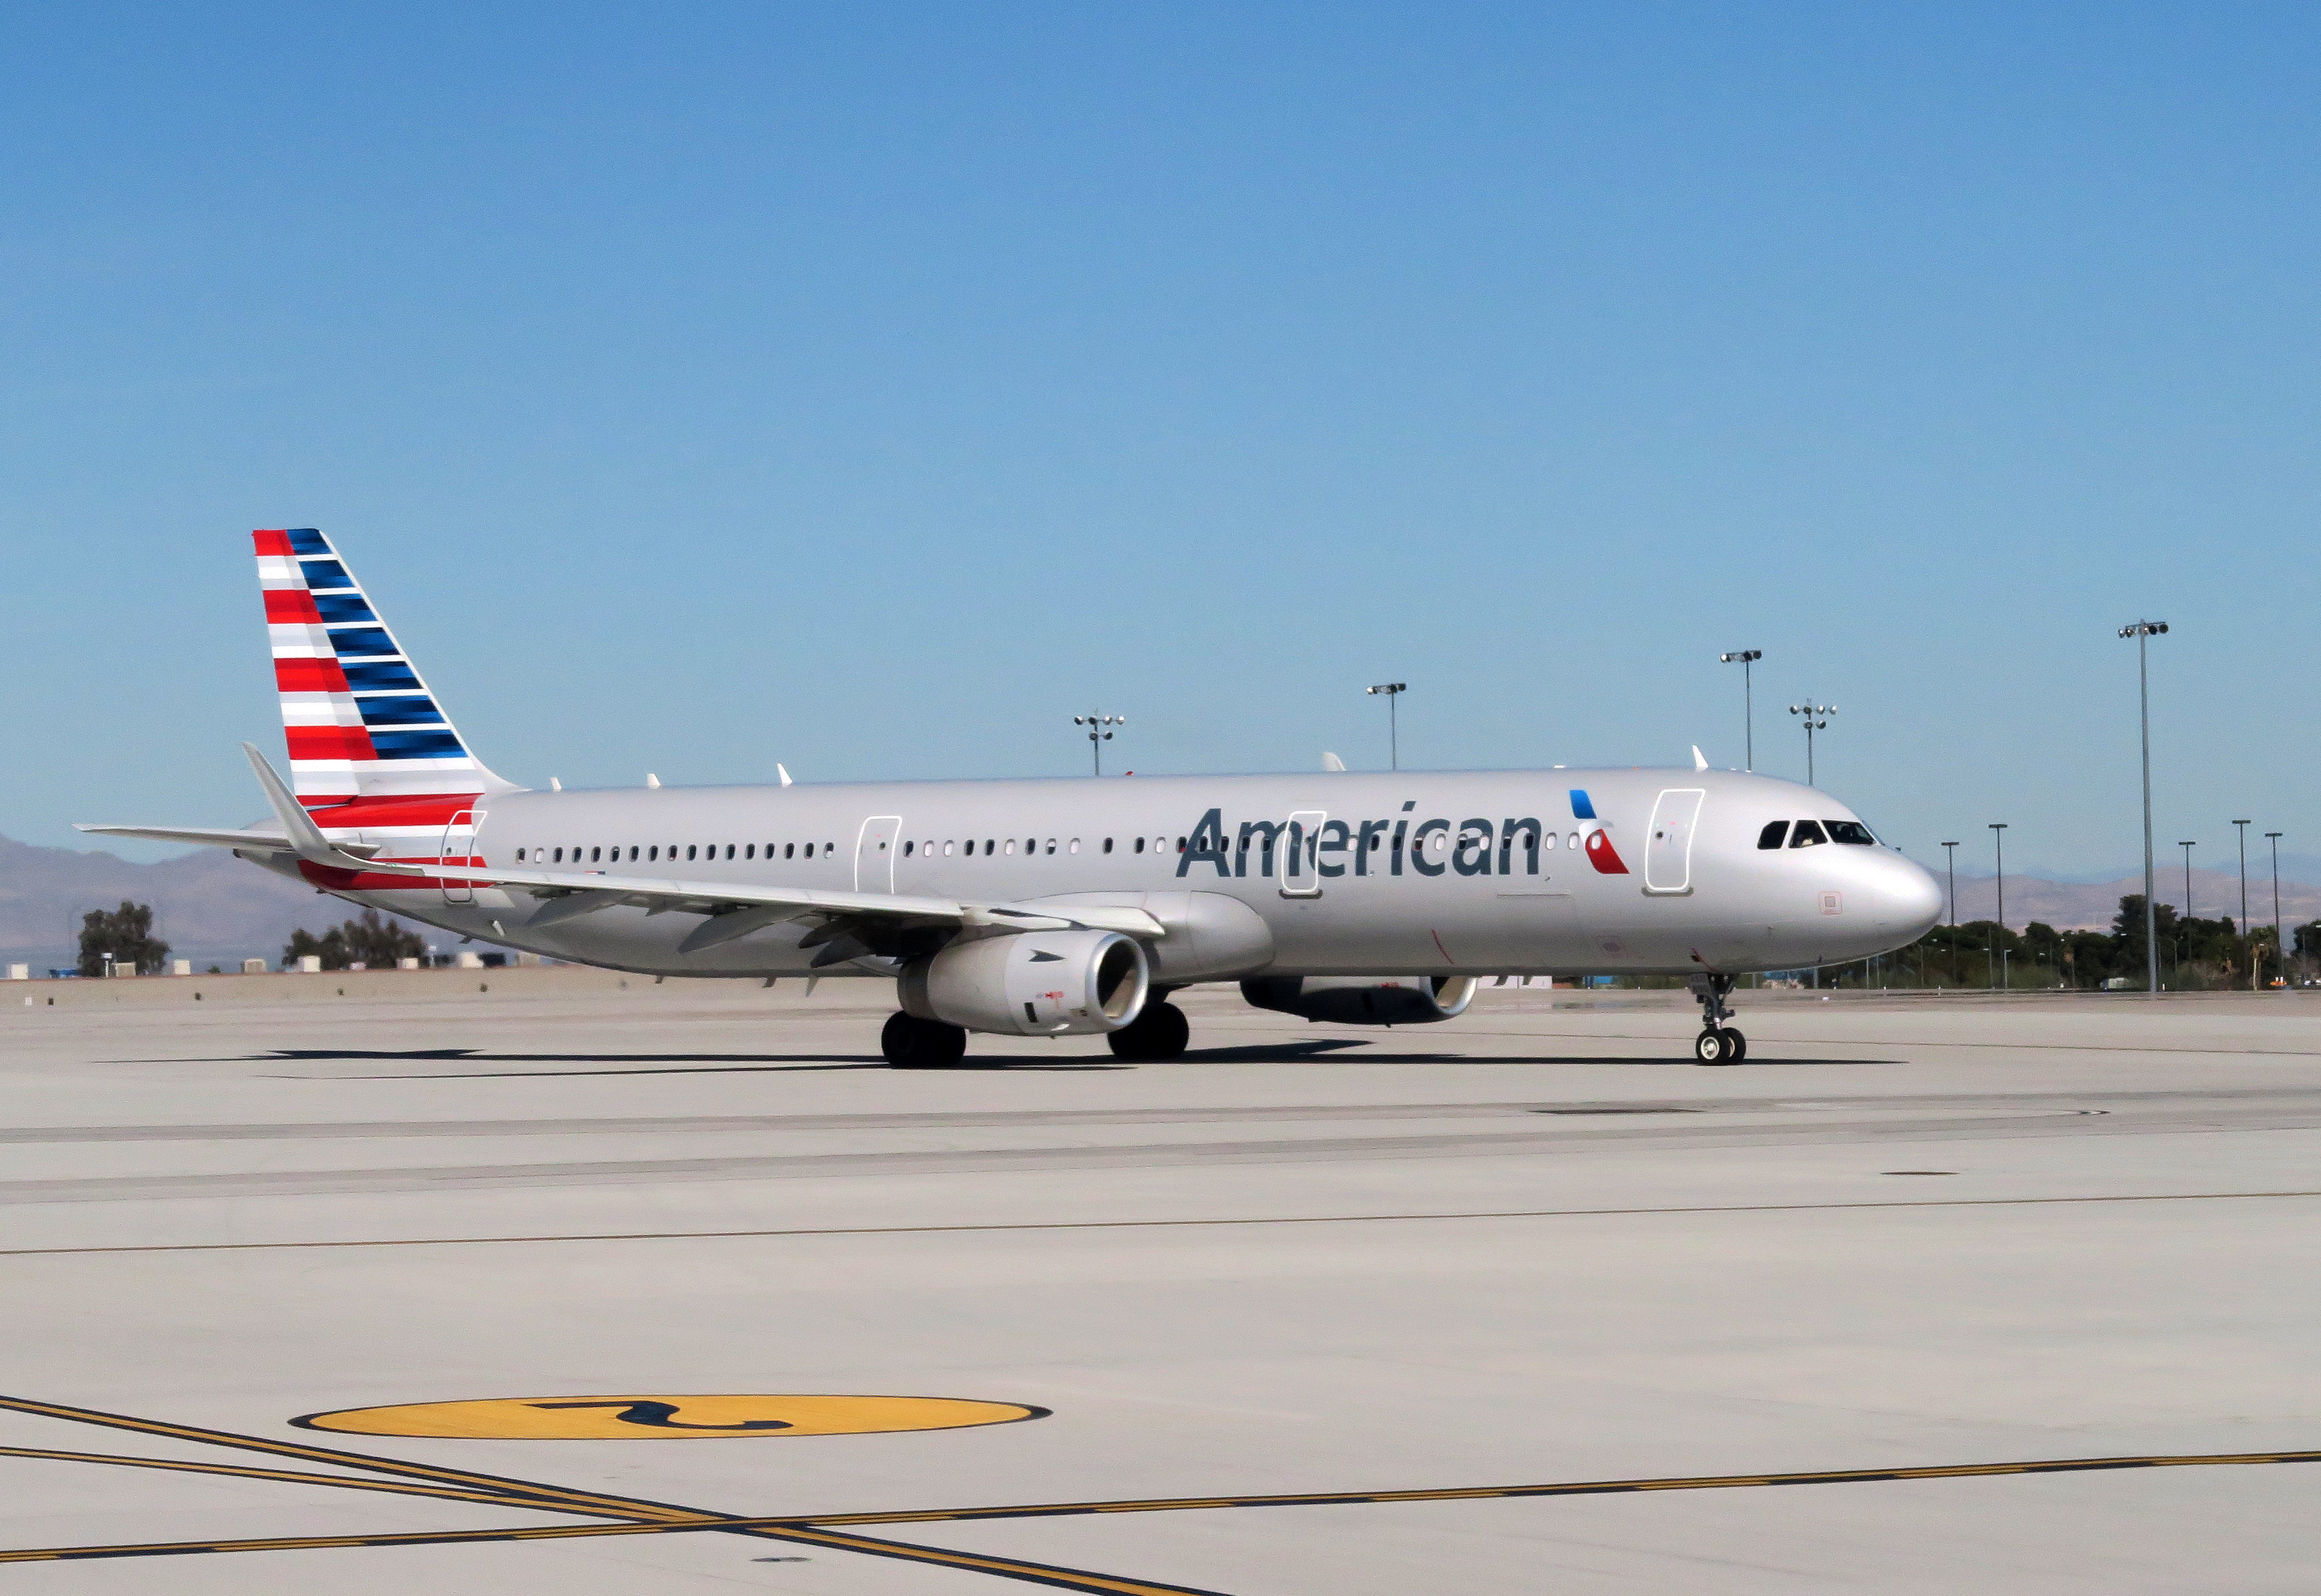 An American Airlines plane sits on the tarmac of McCarran International Airport in Las Vegas, Nevada on February 15, 2017.